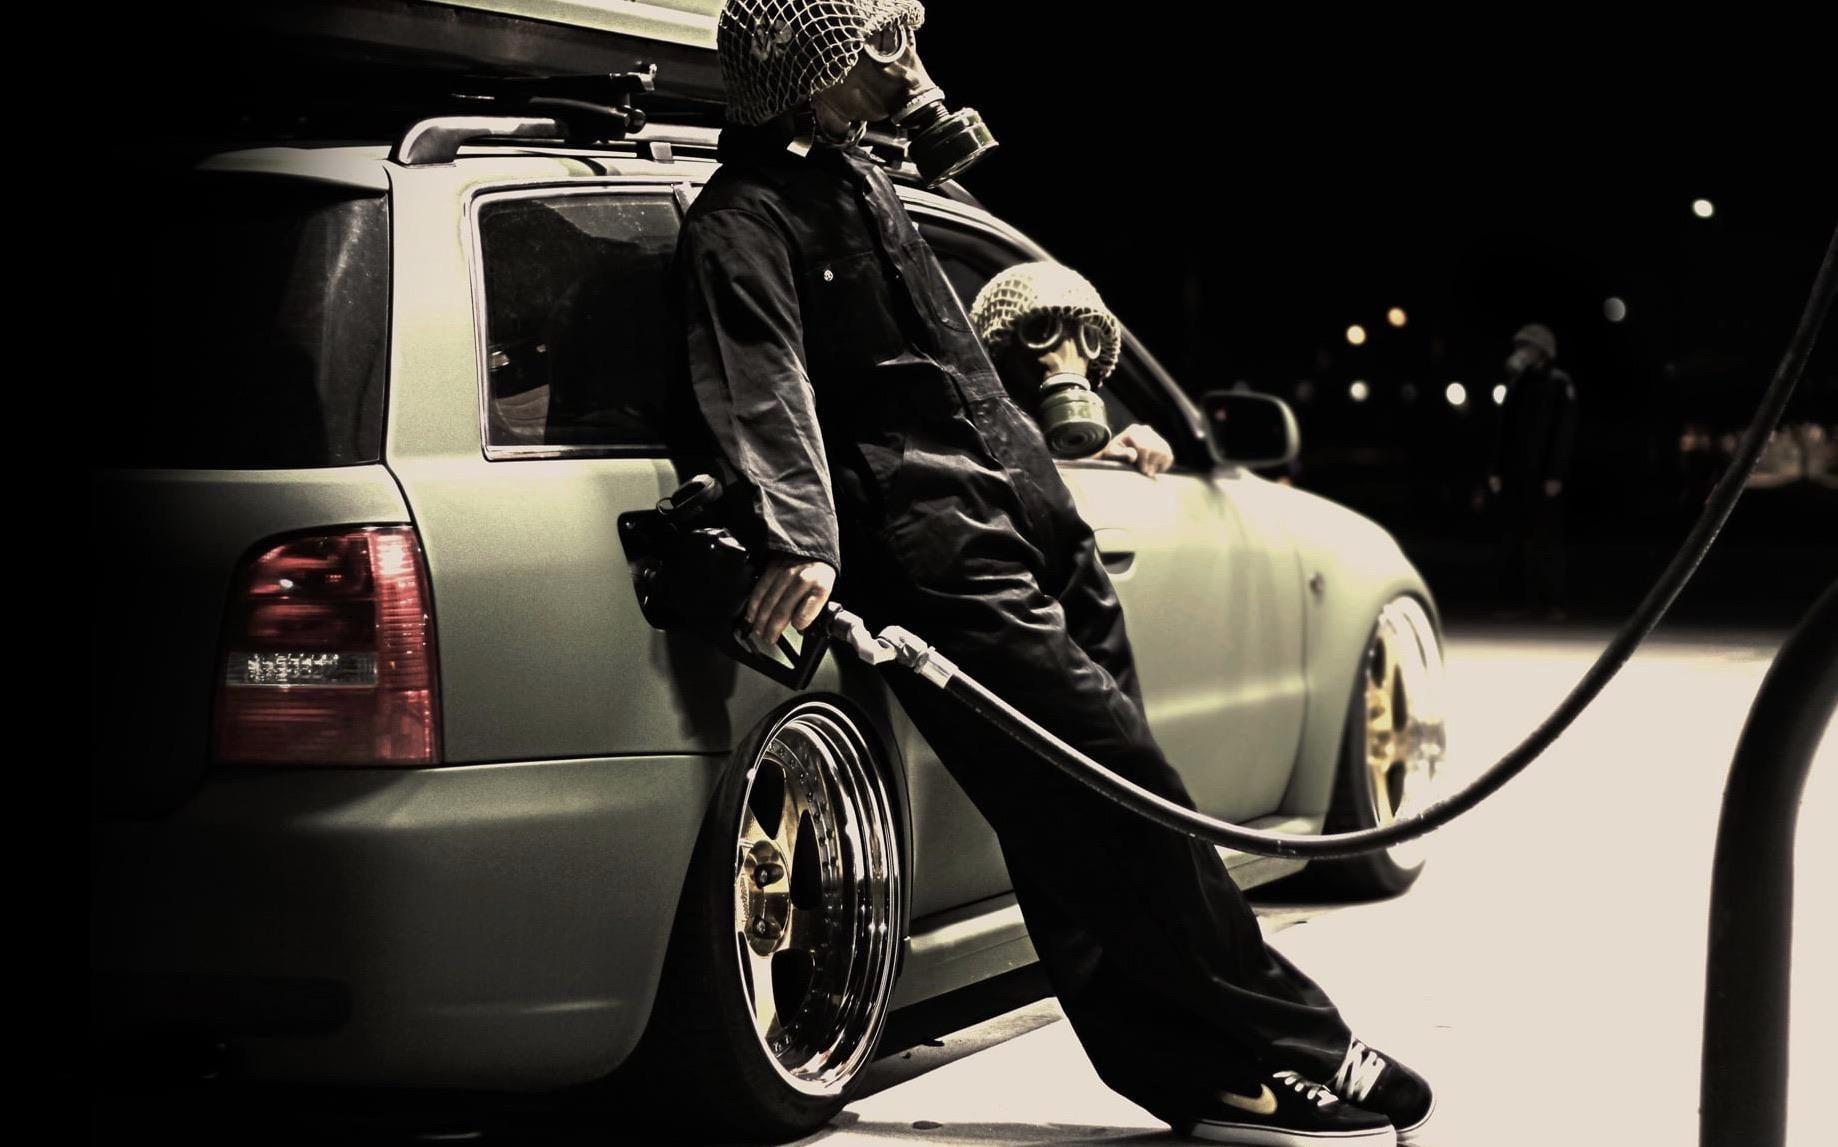 Man Fueling up an Audi wearing a Gas Mask